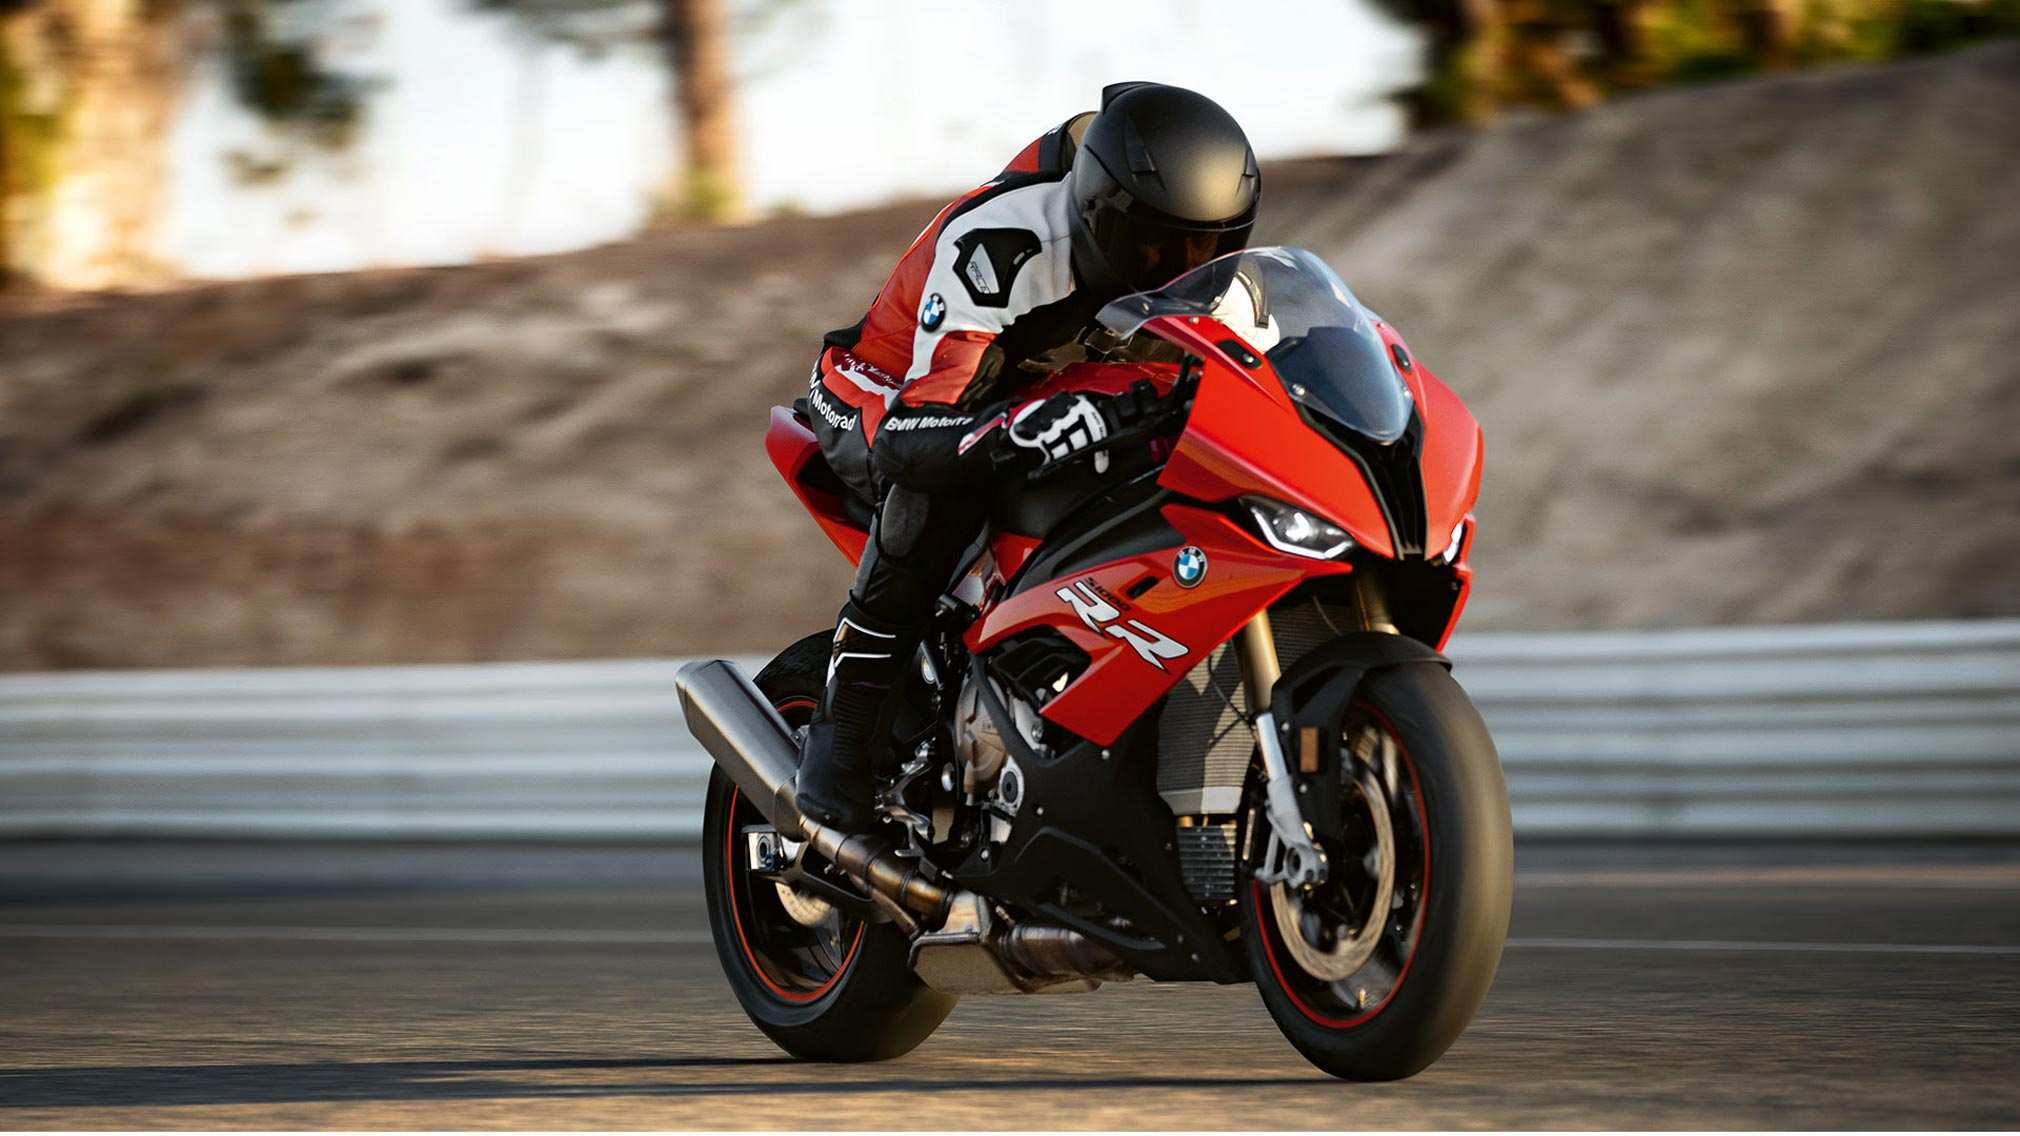 52 All New BMW S1000Rr 2020 Picture with BMW S1000Rr 2020